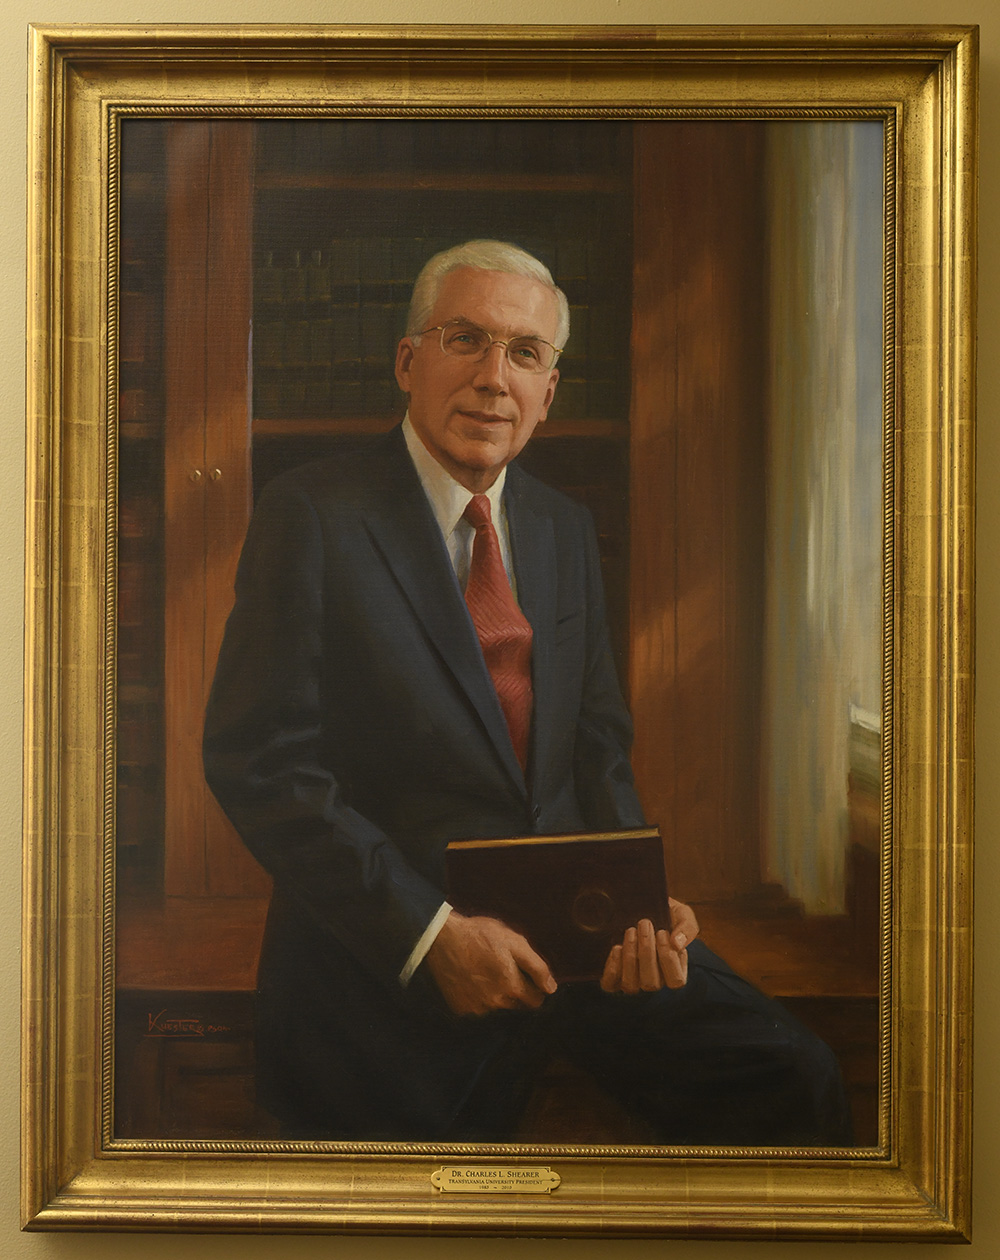 portrait painting of Dr. Shearer by Robert Kuester